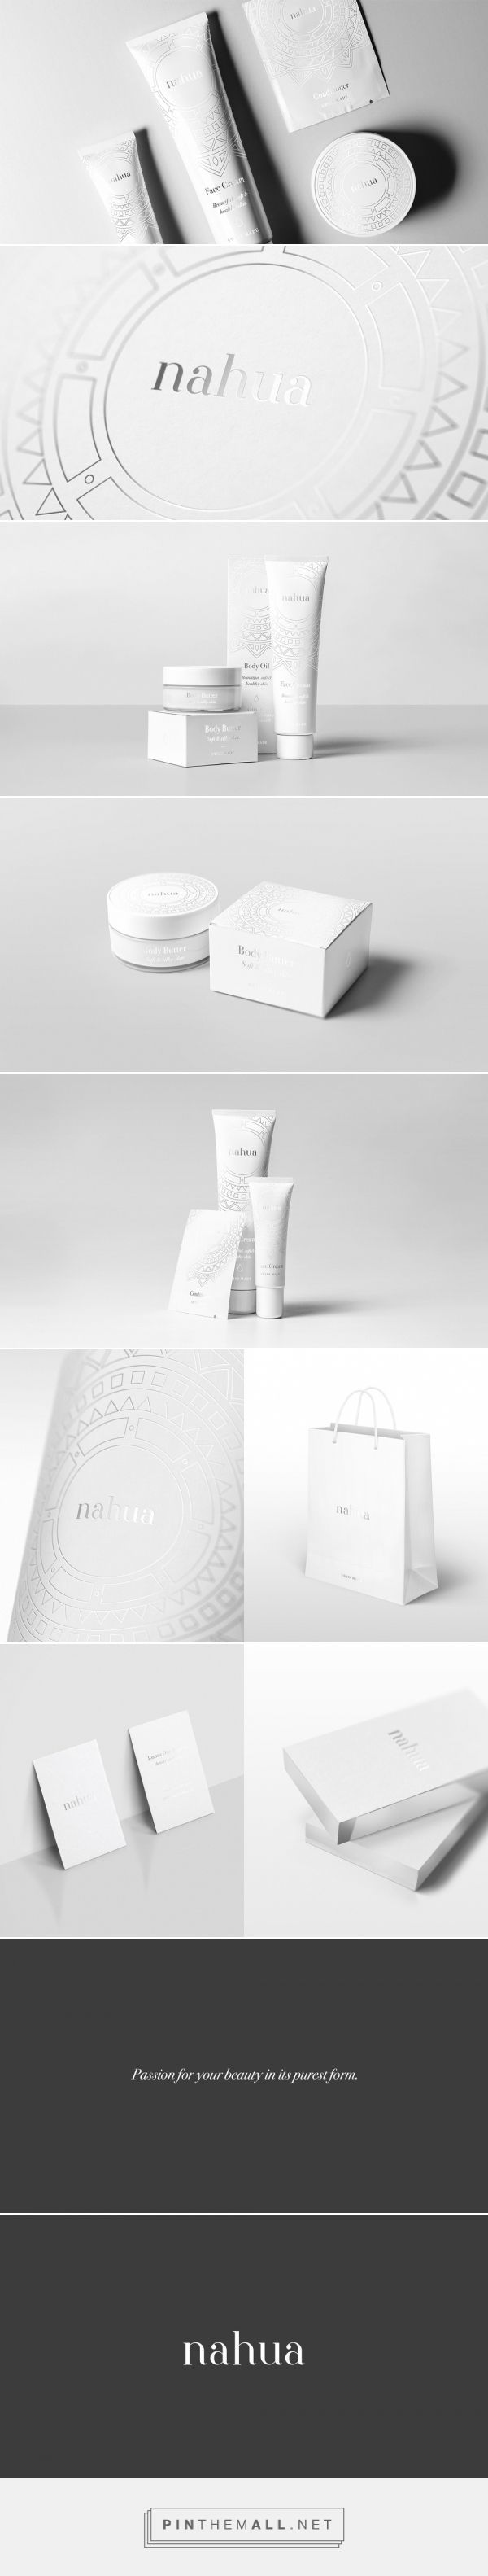 Nahua Cosmetics — The Dieline - Branding & Packaging - created via pinthemall.net